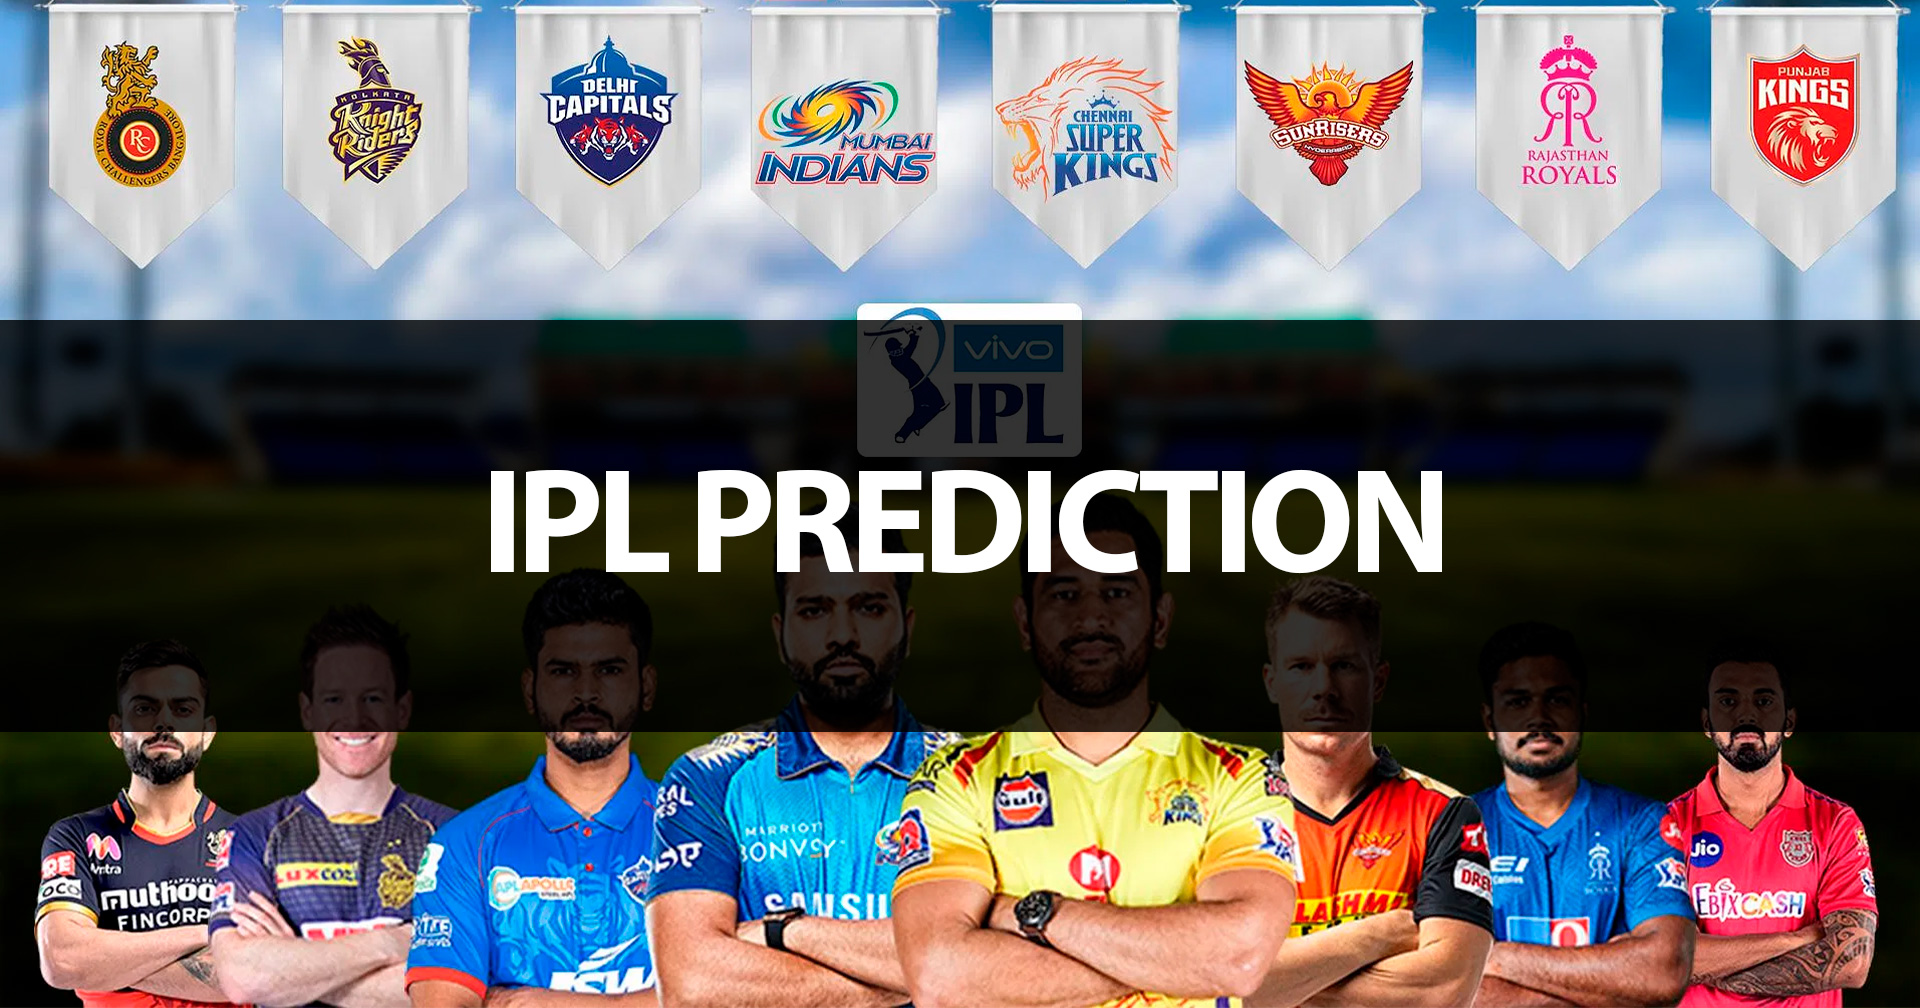 Look for the IPL prediction and stufy it before cricket betting.